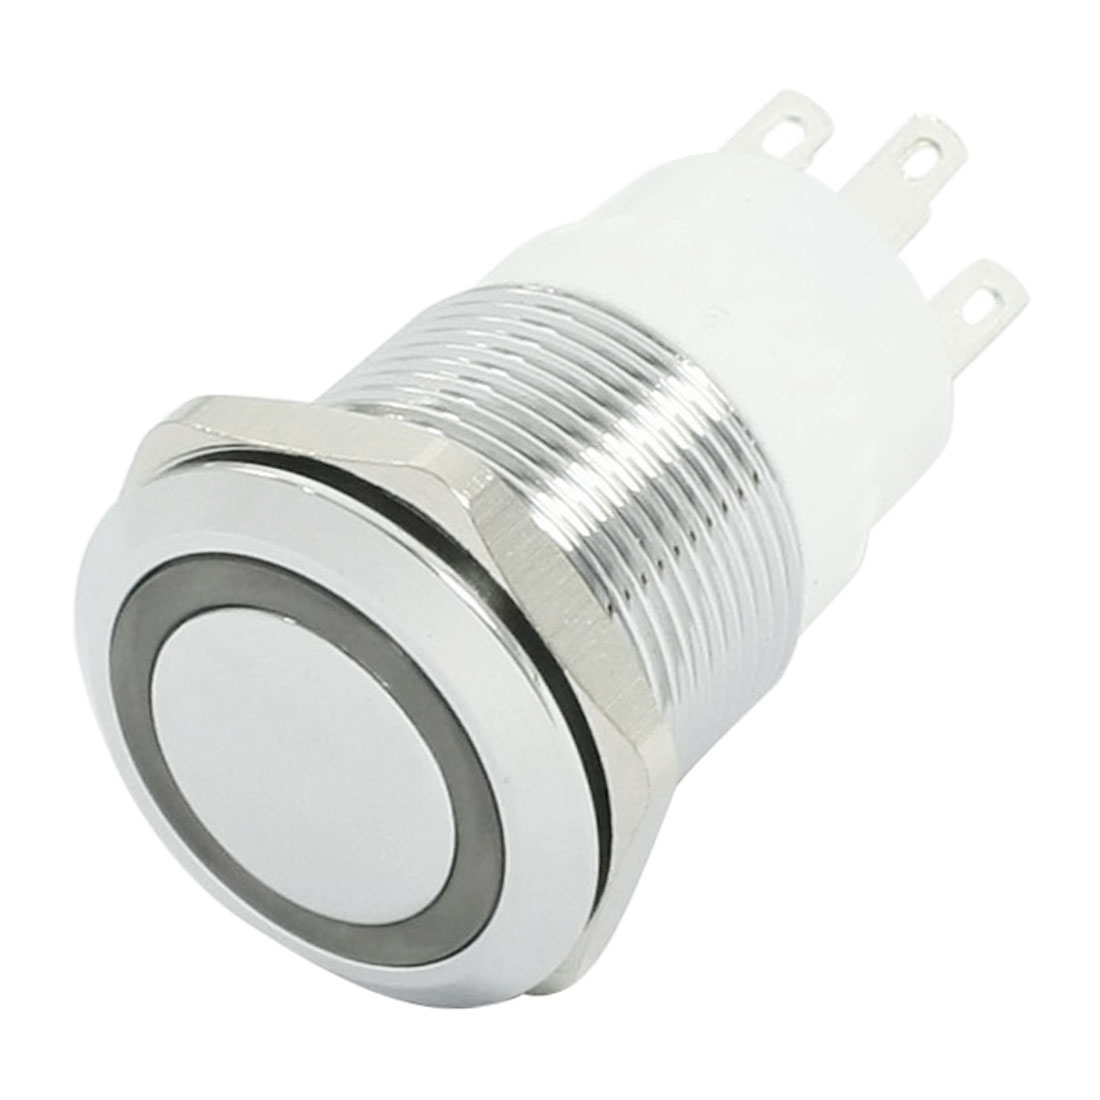 19mm Green LED SPDT Self-locking Stainless Steel Push Button Switch 24V 3A